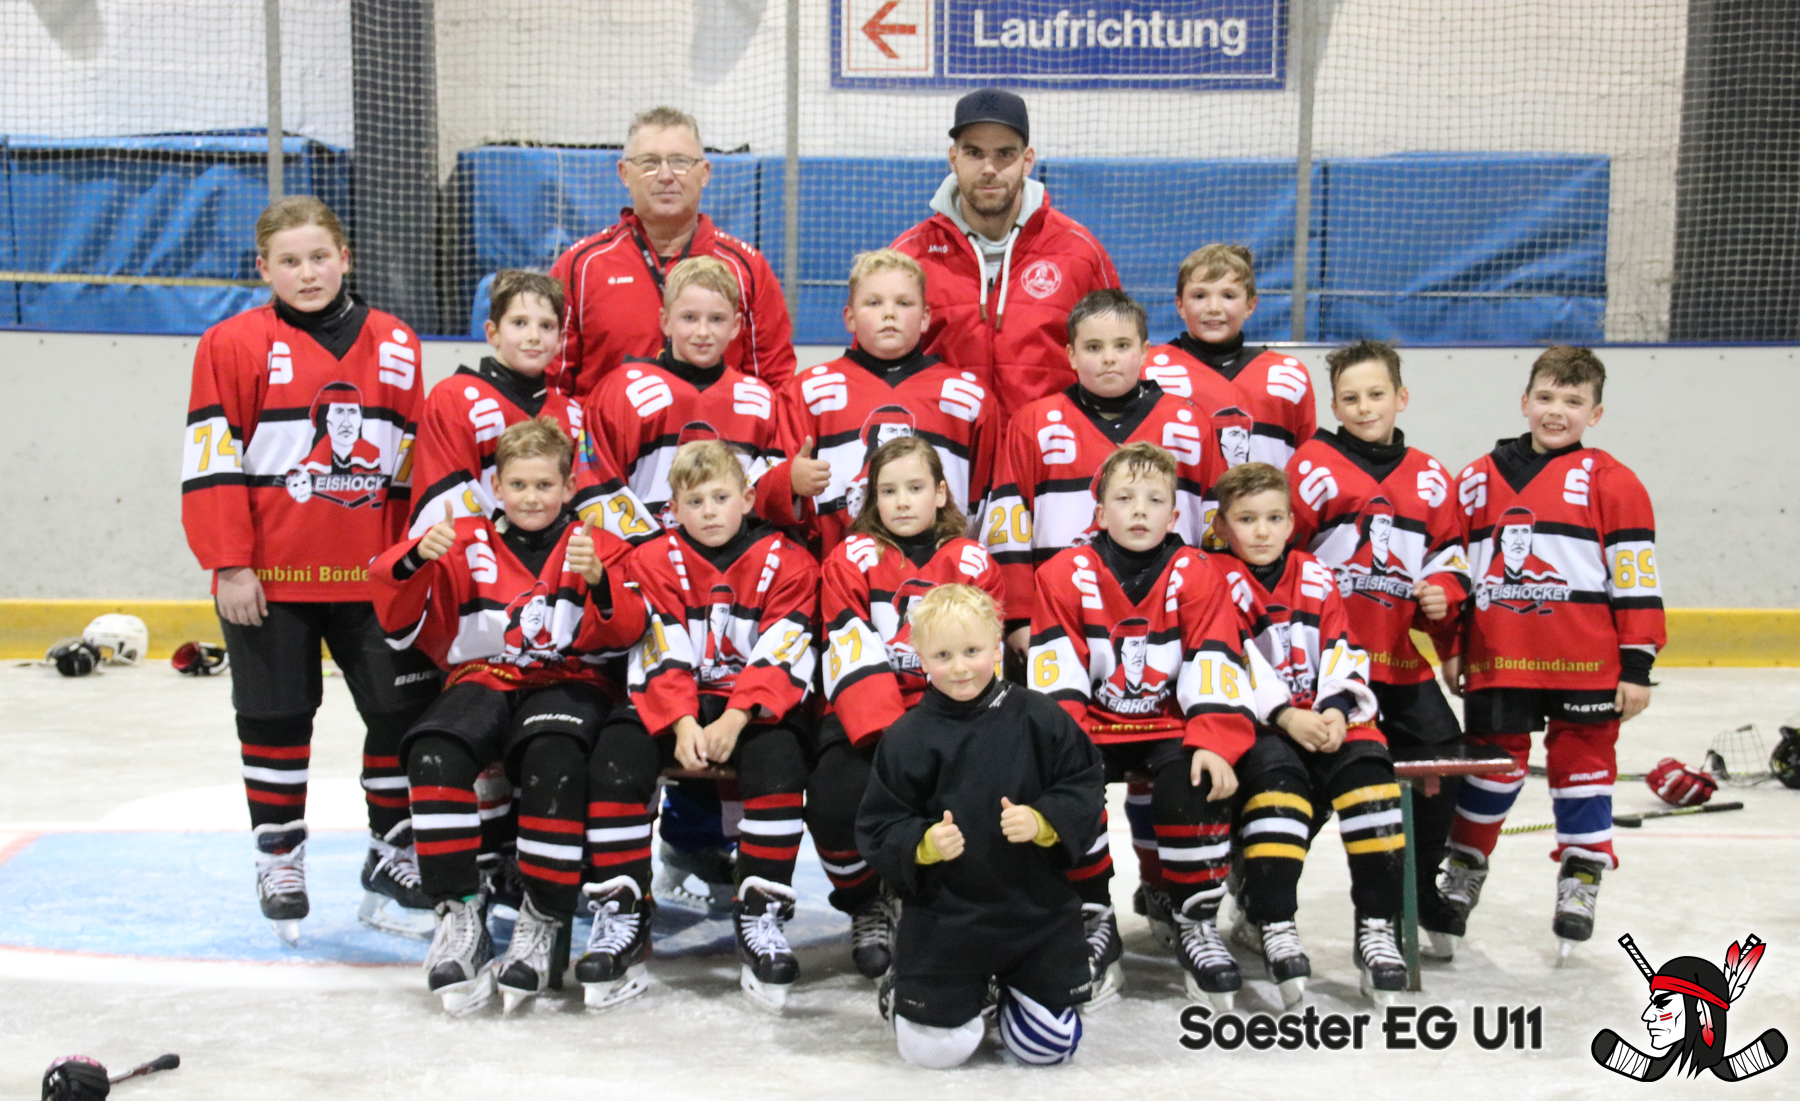 seg_u11_teamfoto_1800_marked.jpg